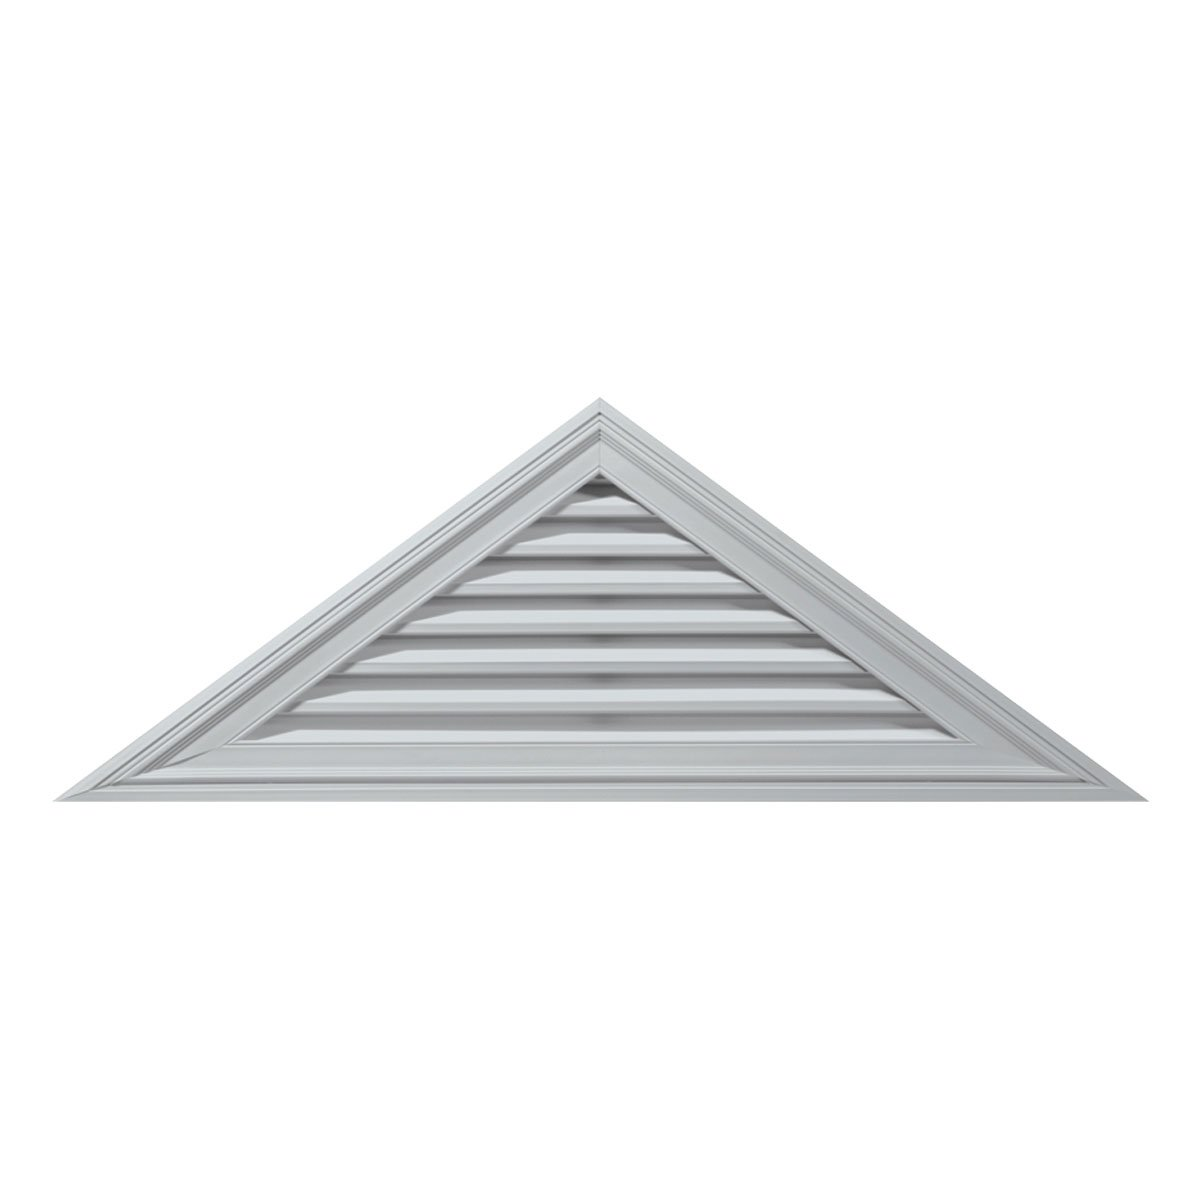 Builders Edge 120141007001 56'' x 23'' 10/12 Pitch Triangle Vent 001, White